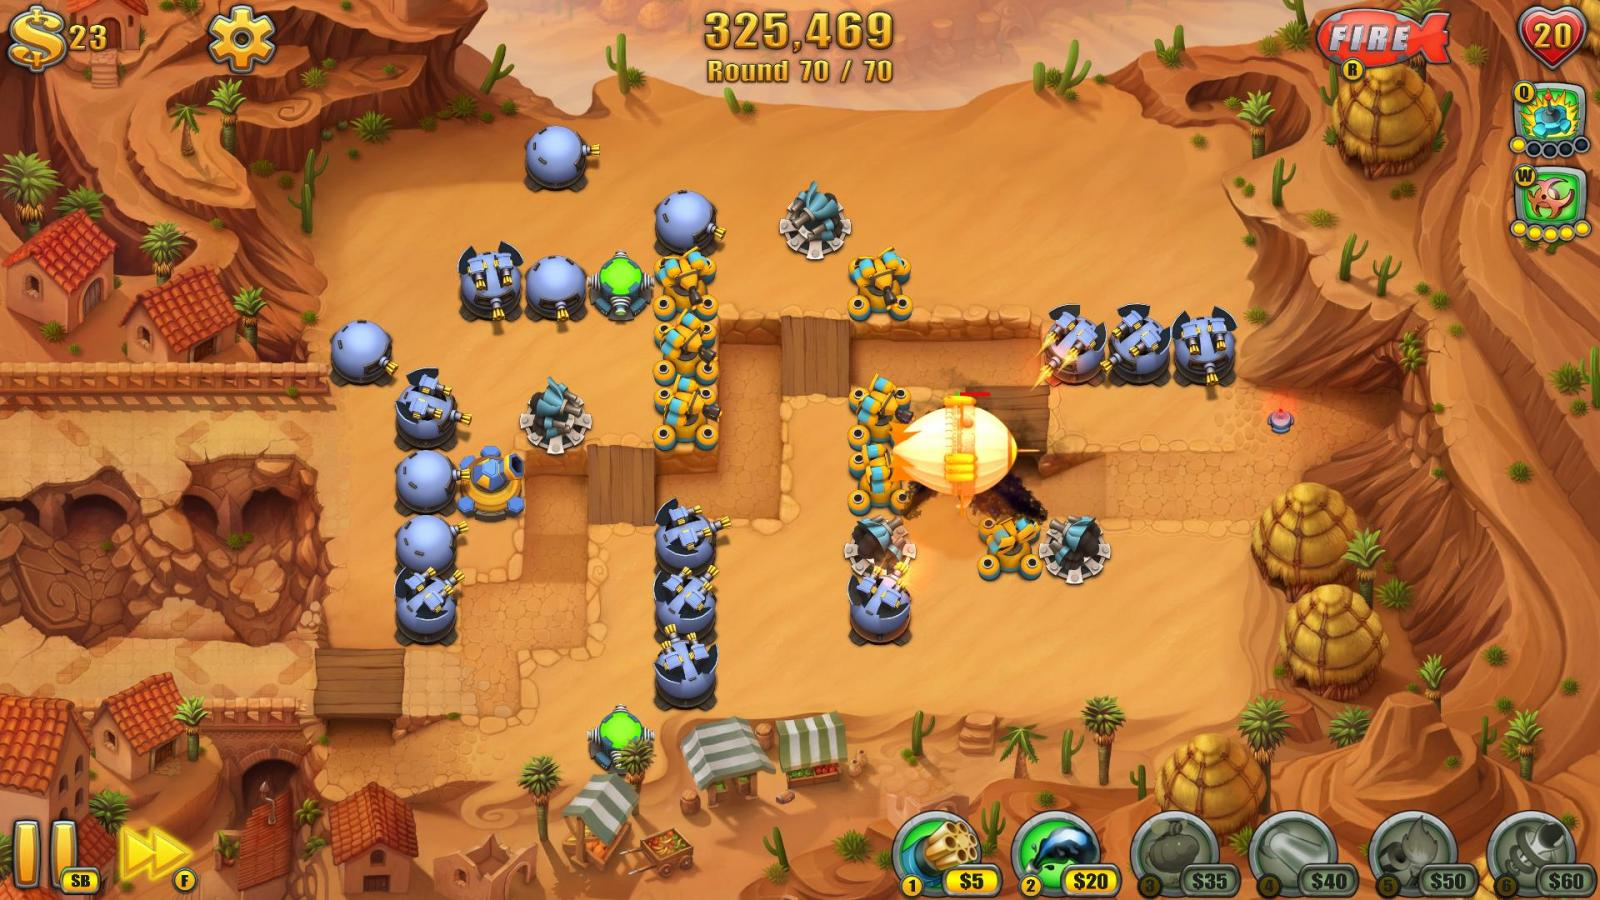 Fieldrunners 2 - Full Version Game Download - PcGameFreeTop